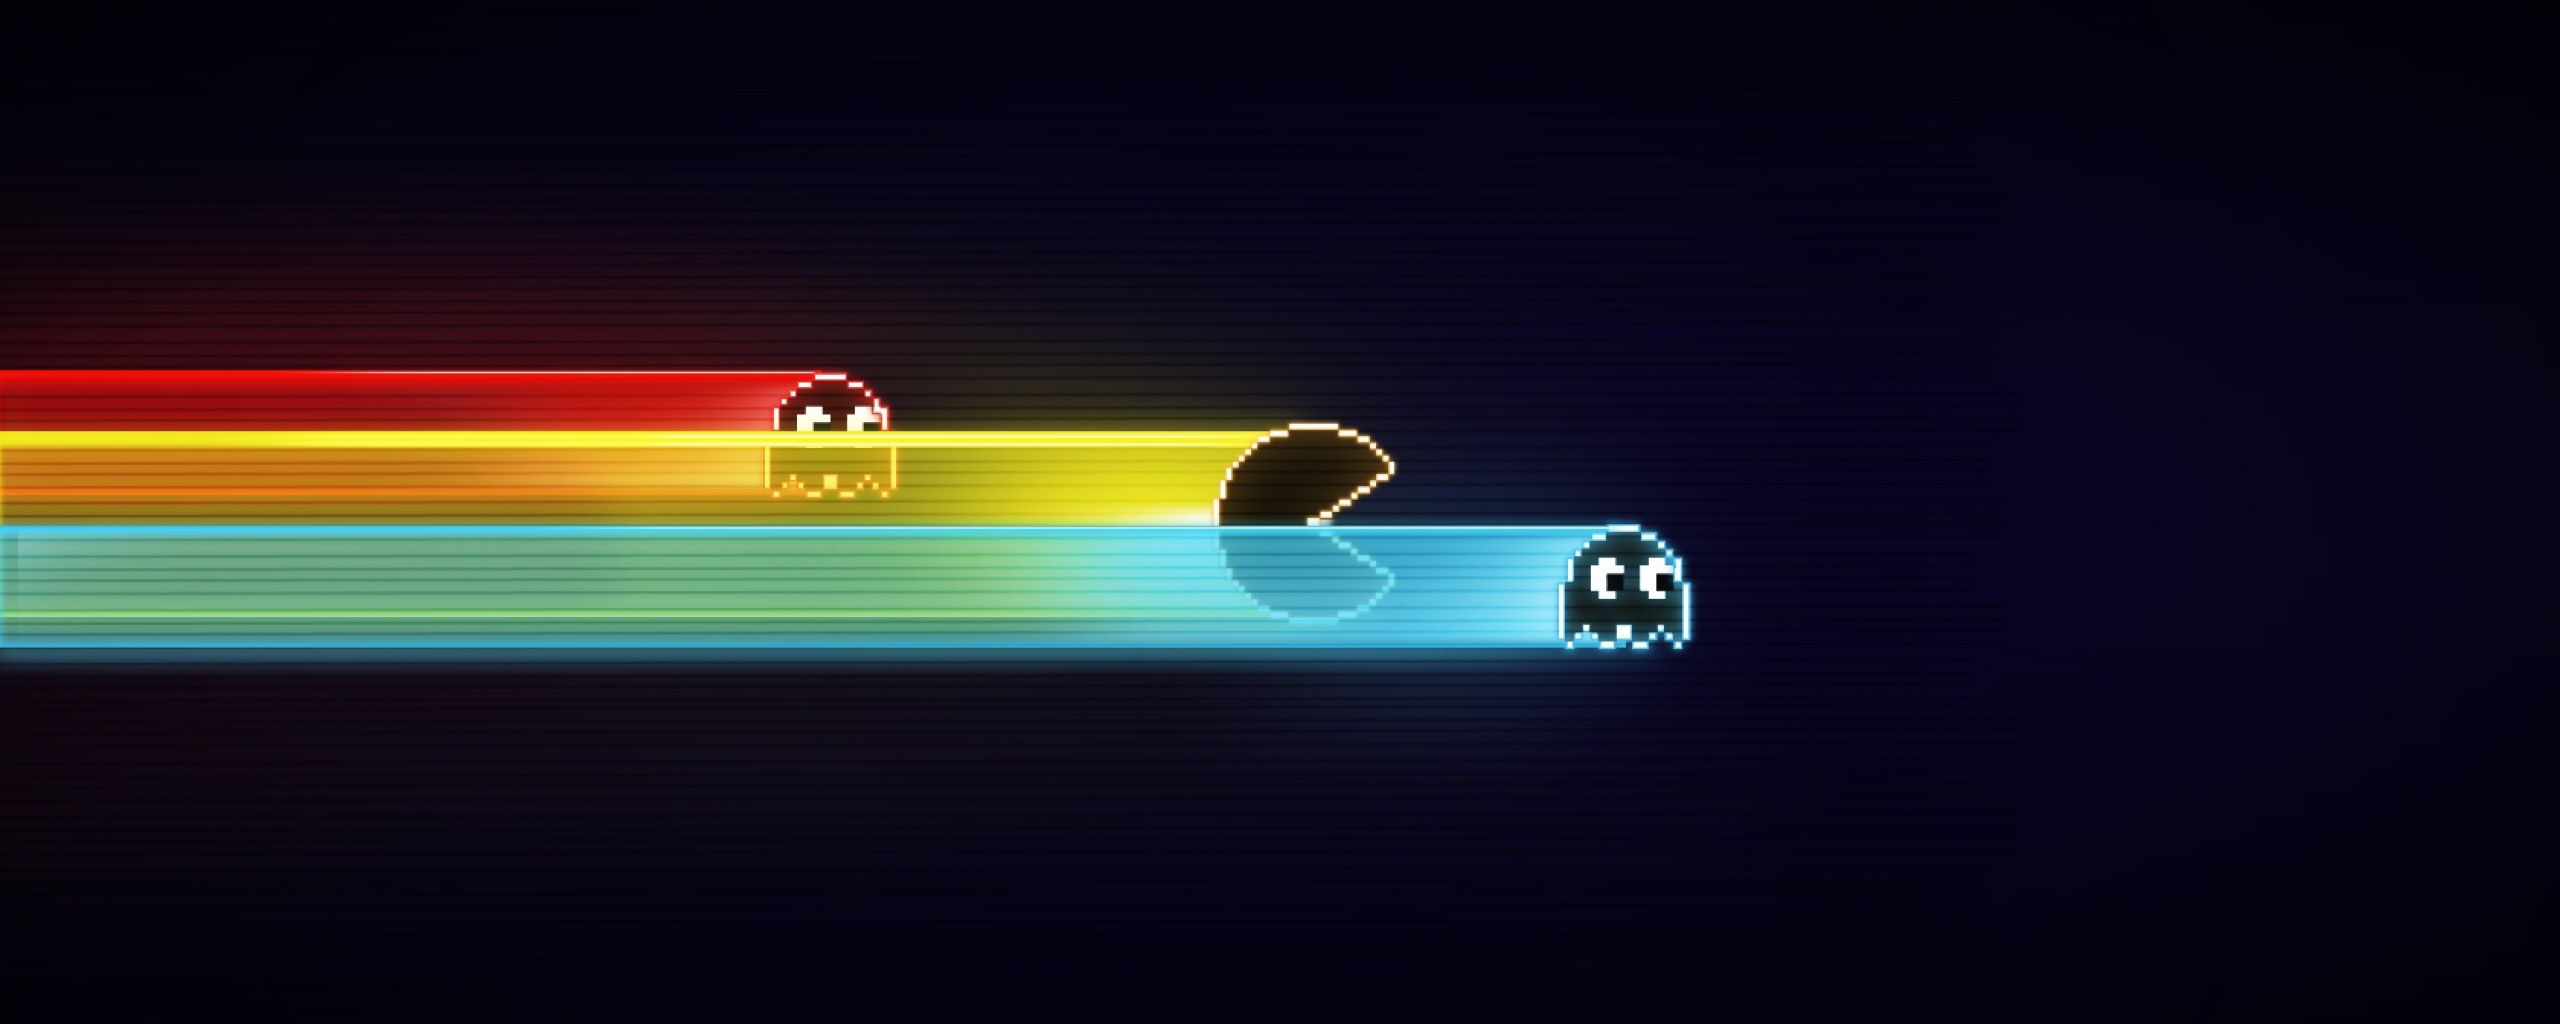 2560x1024 pac man dual monitor wallpaper 1 | Dual Monitor Wallpaper